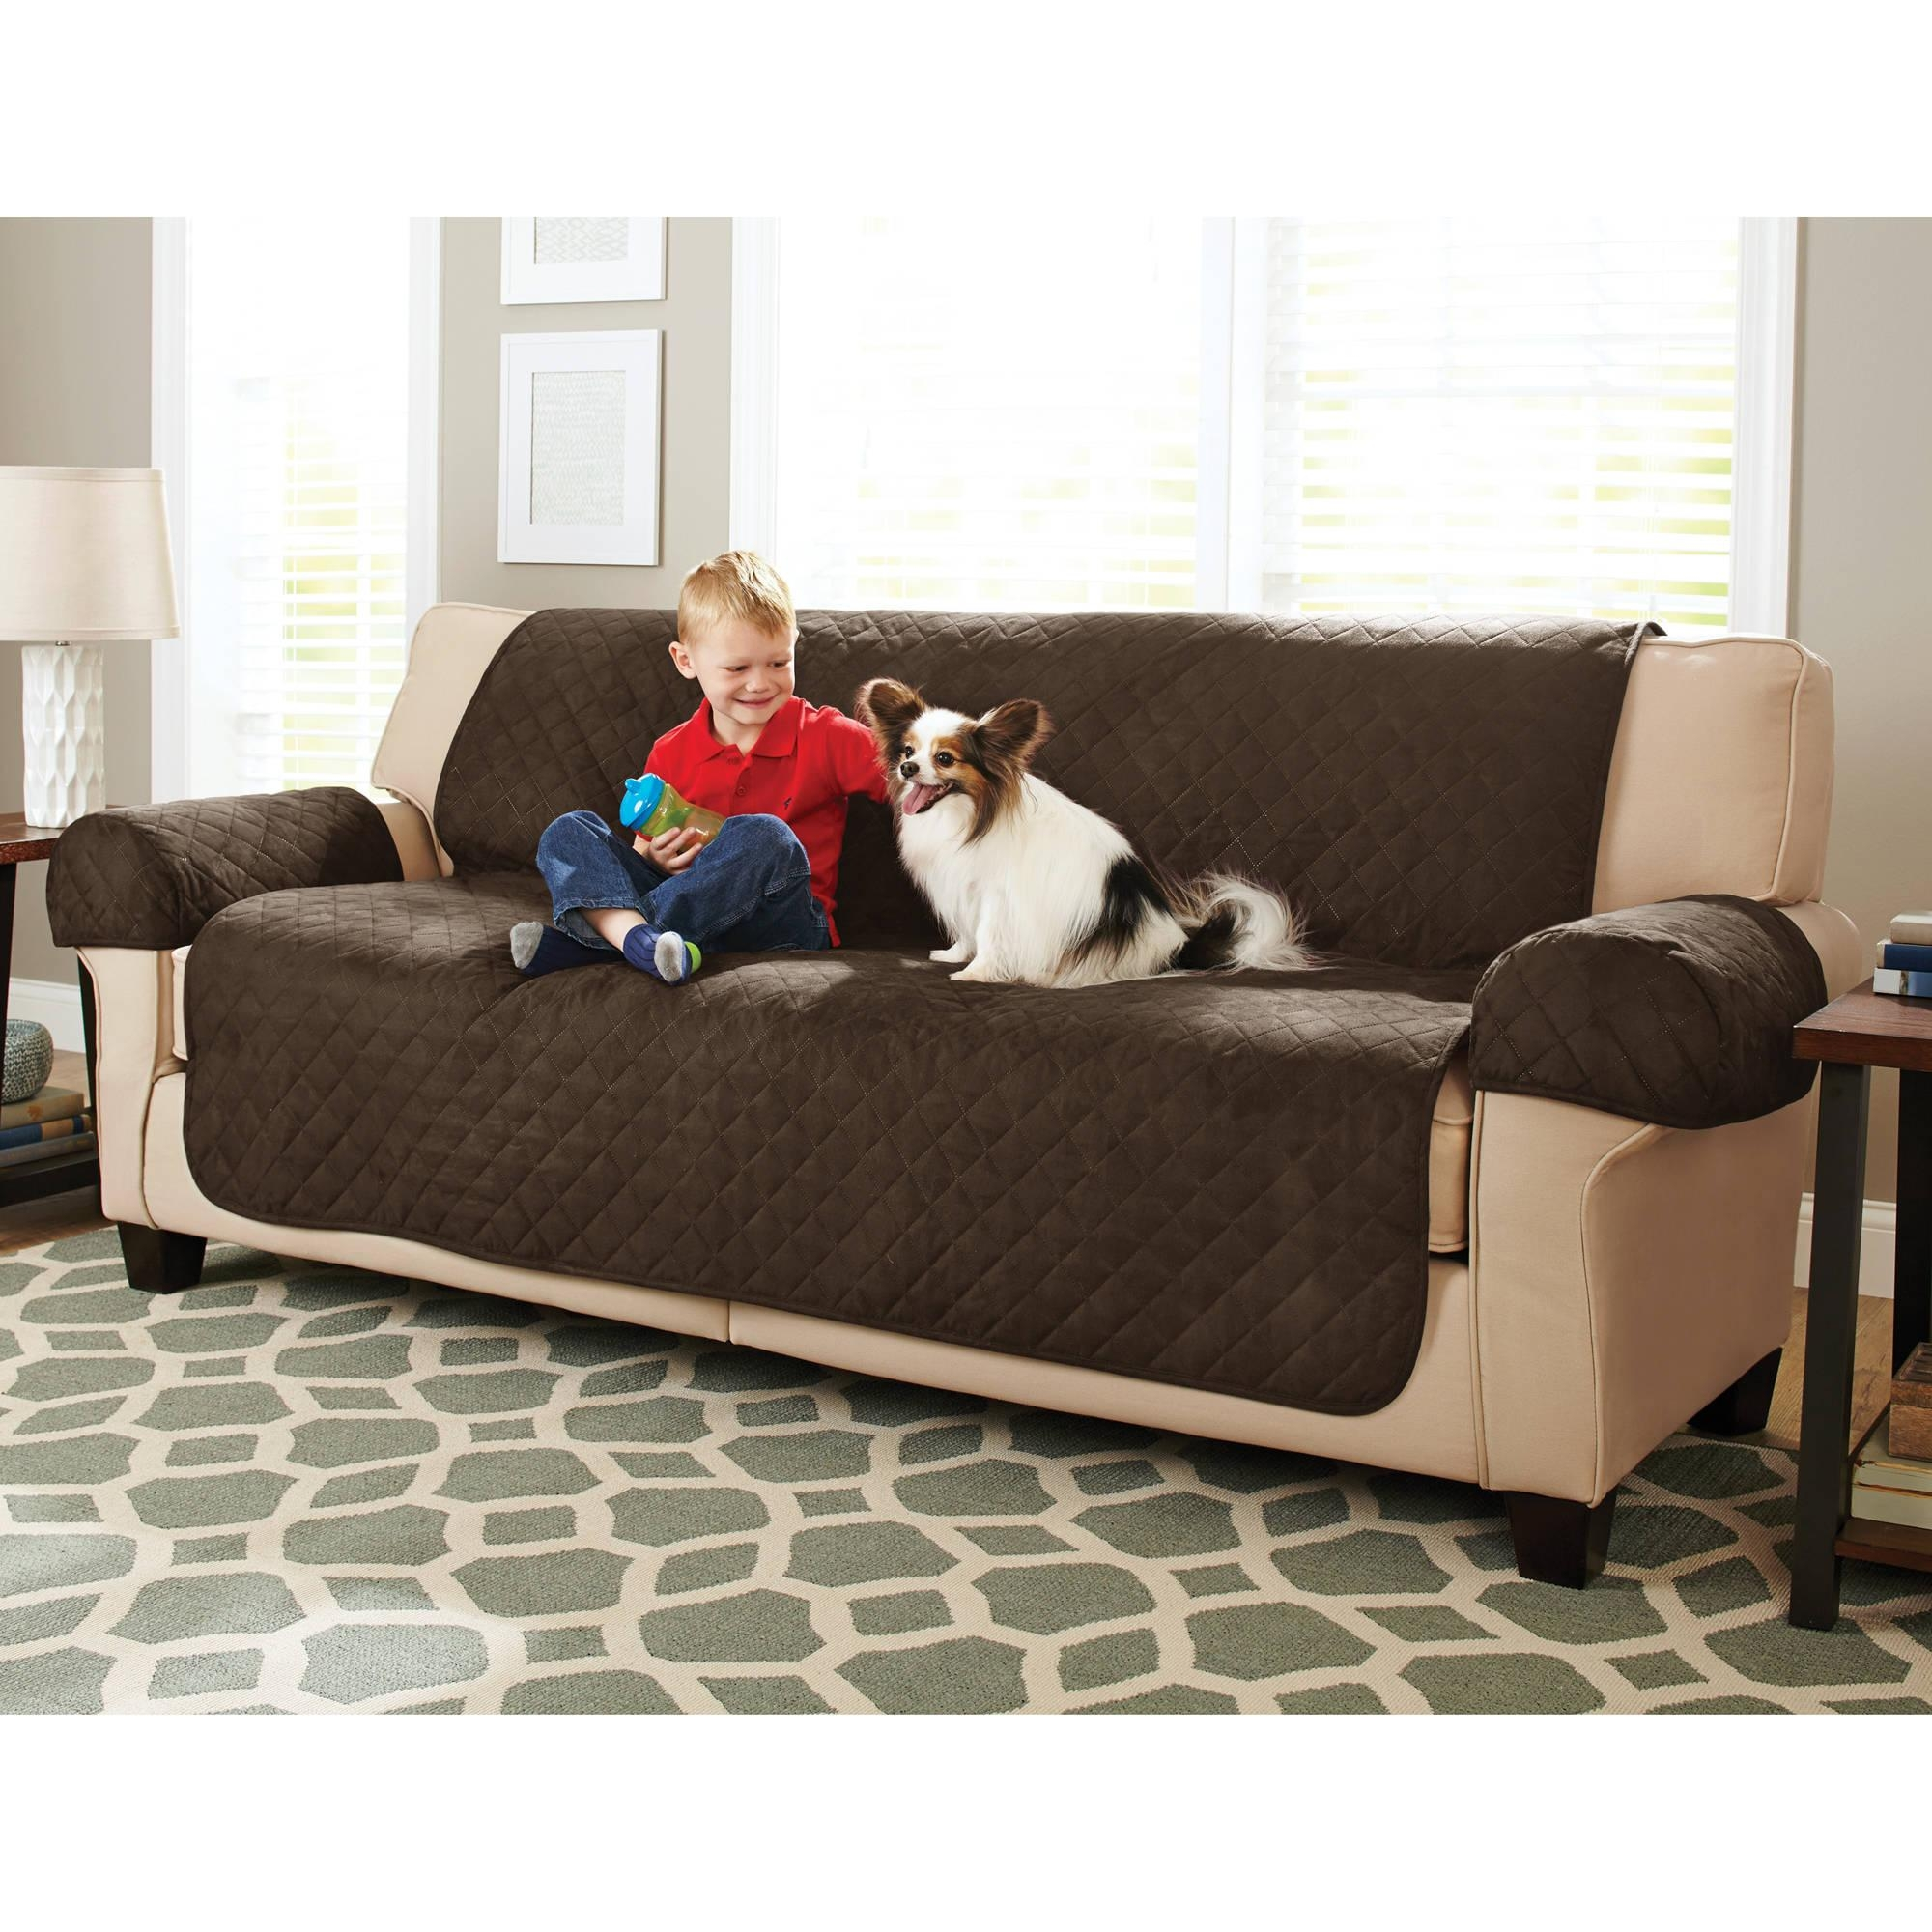 Furniture: Plastic Couch Cover Walmart | Chaise Lounge Slipcover Regarding Slipcovers For Chaise Lounge Sofas (Image 11 of 20)